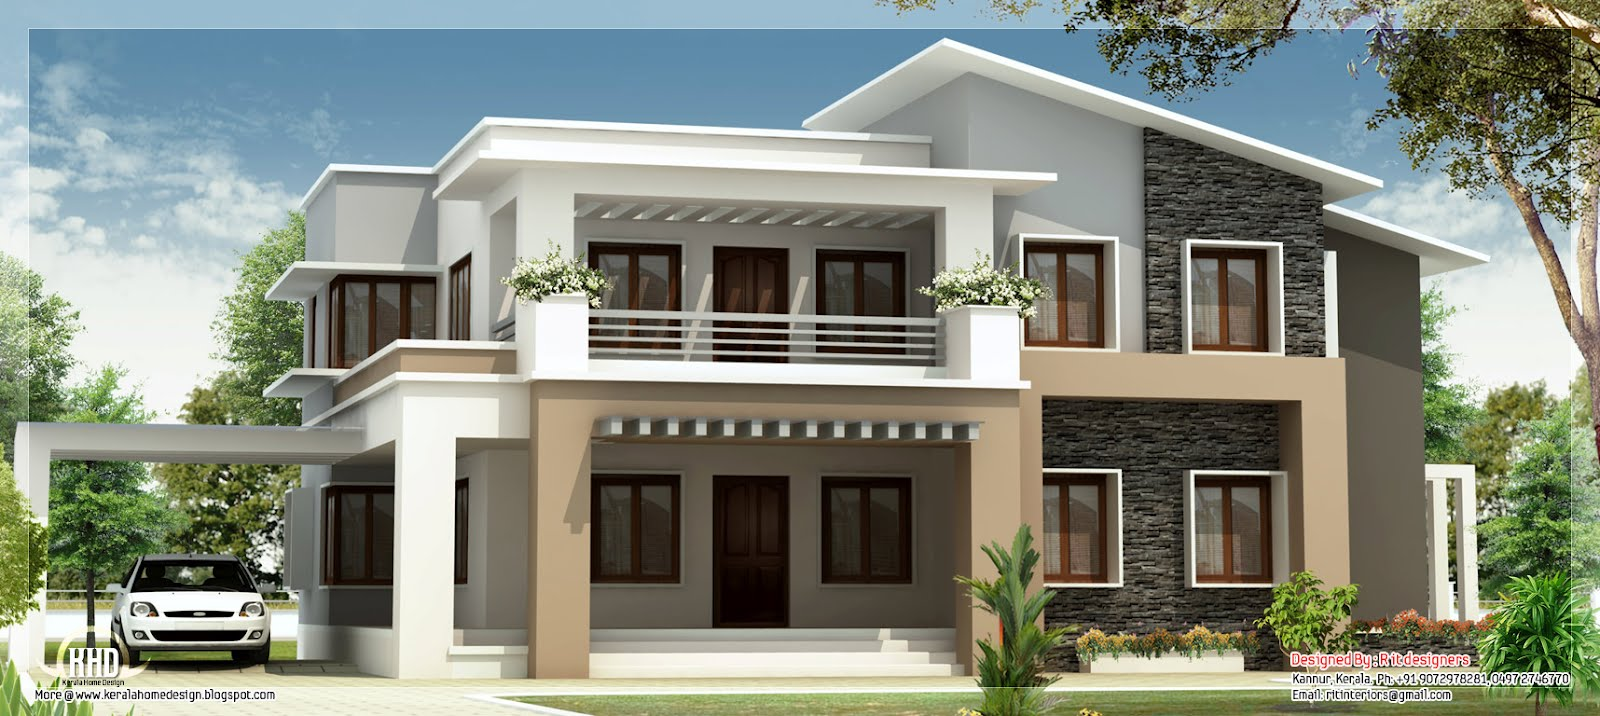 Modern mix double floor home design indian house plans 2 floor house